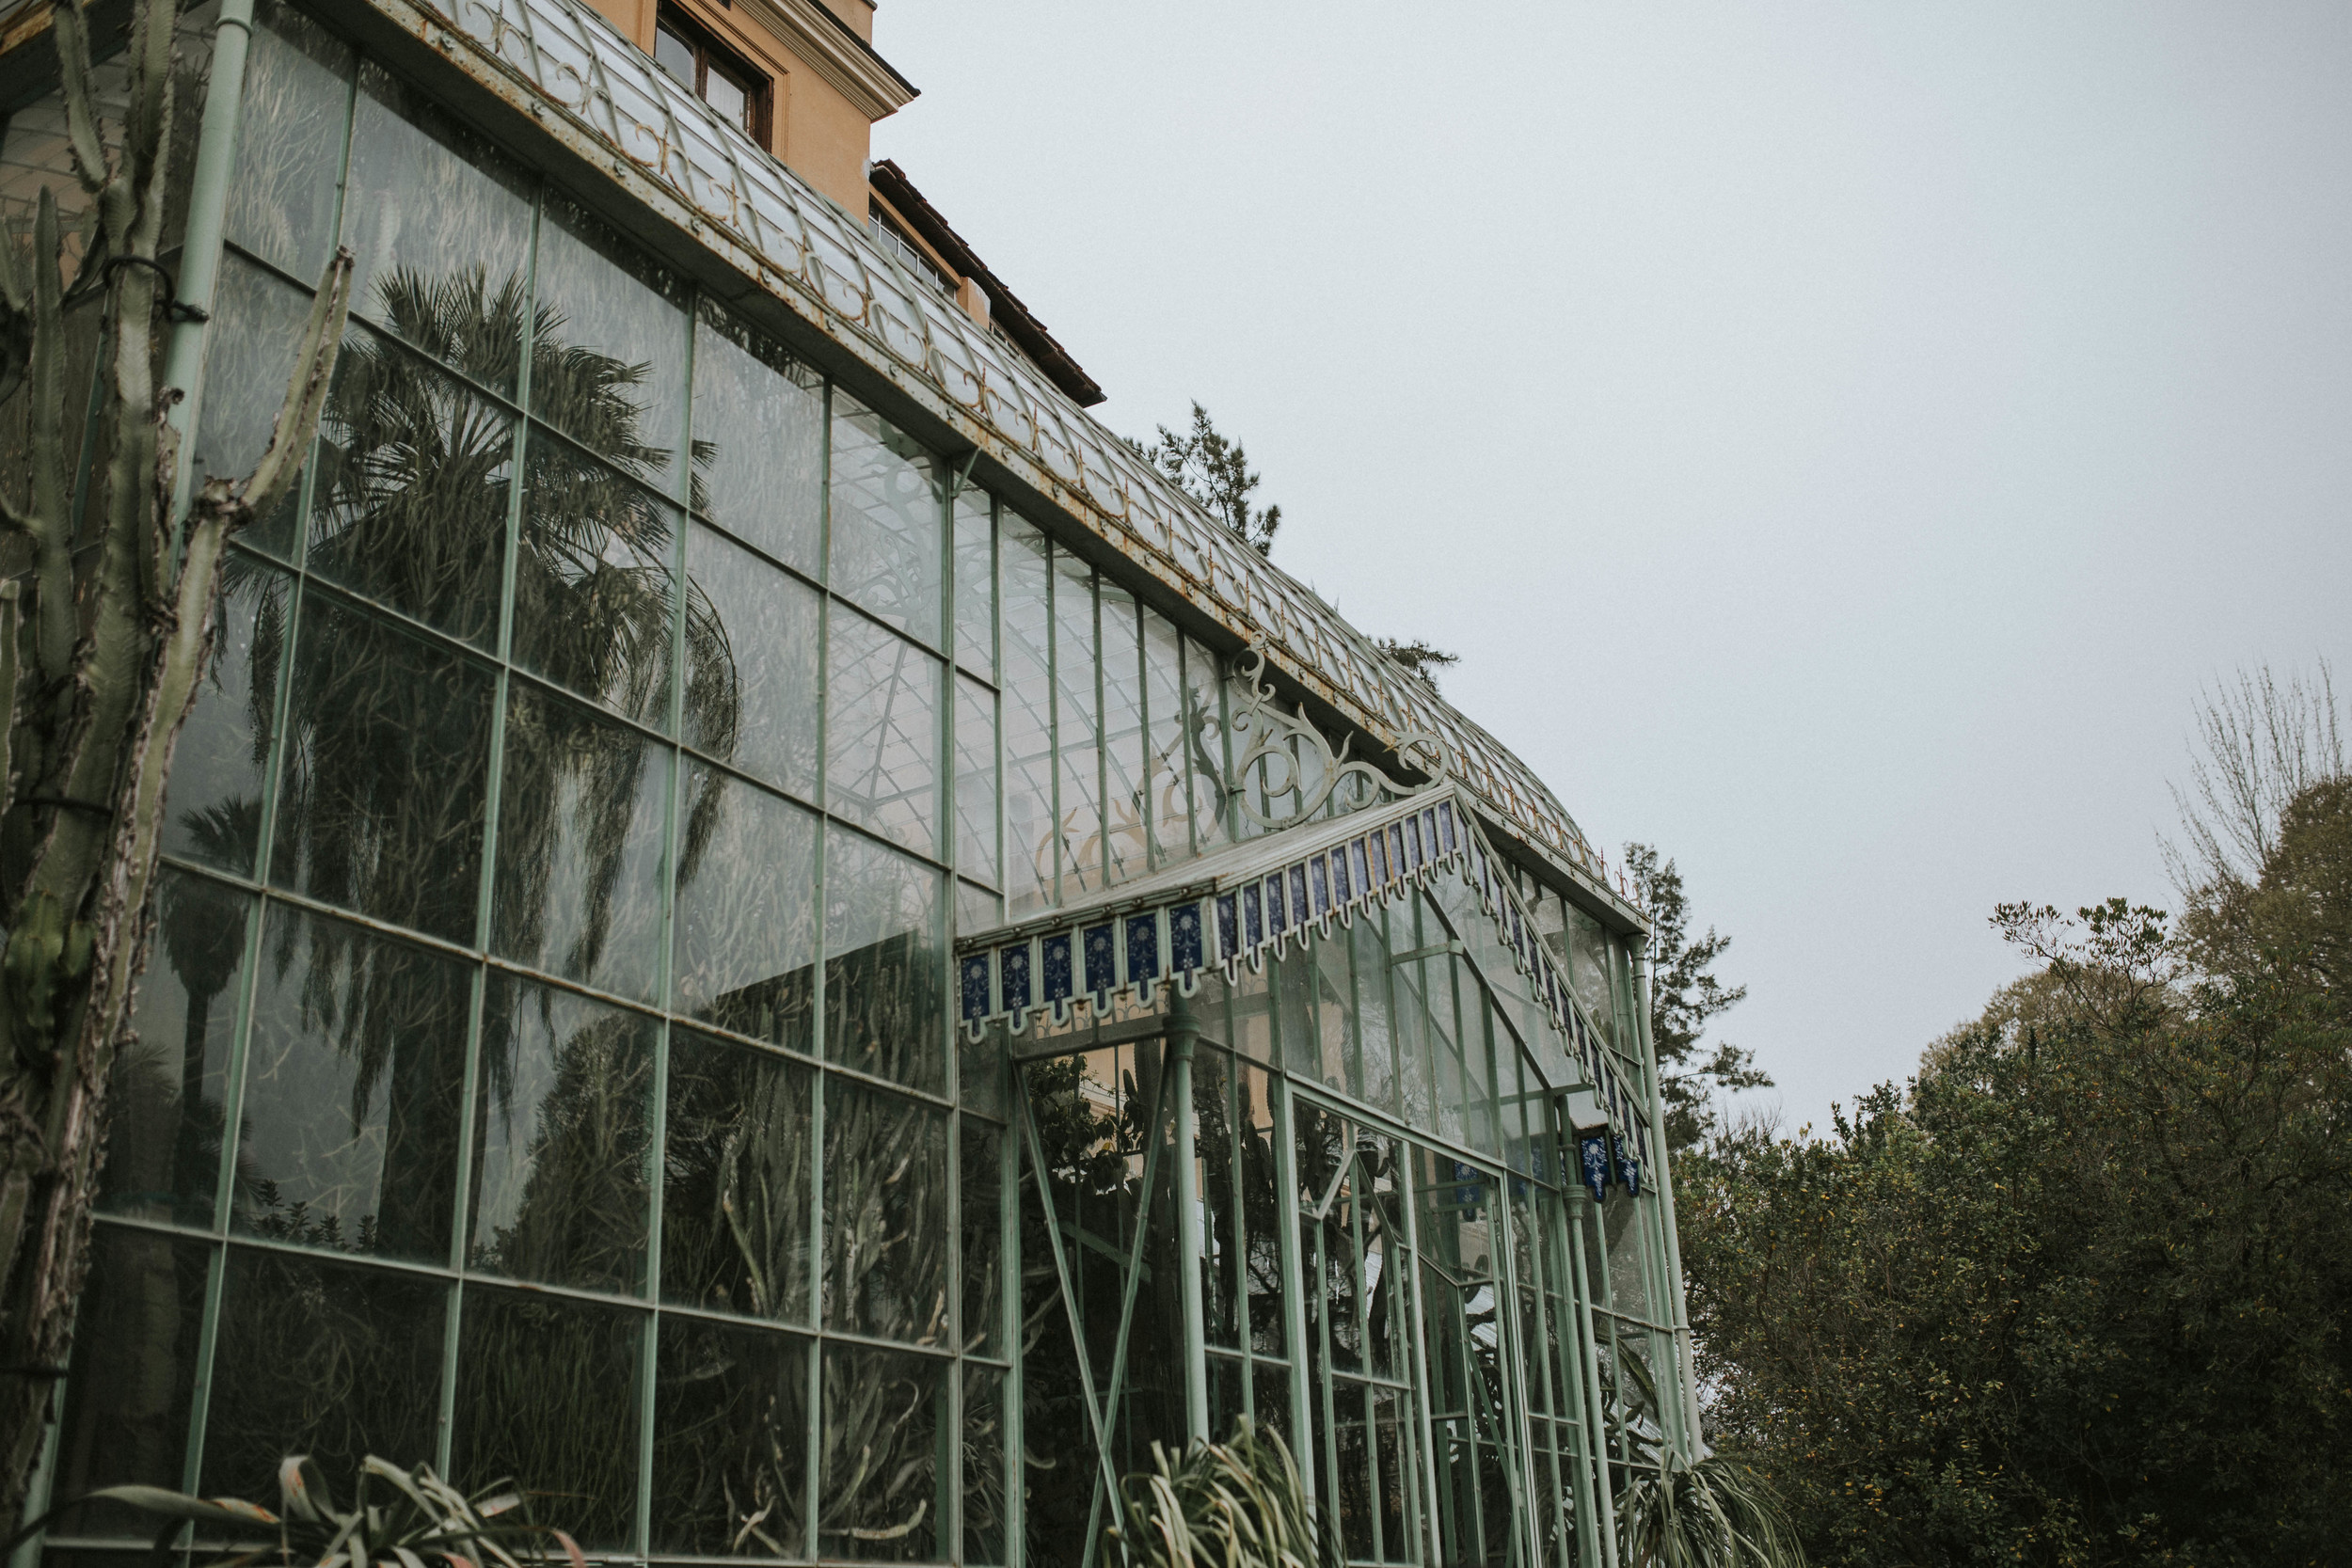 A day out in Botanical gardens Rome